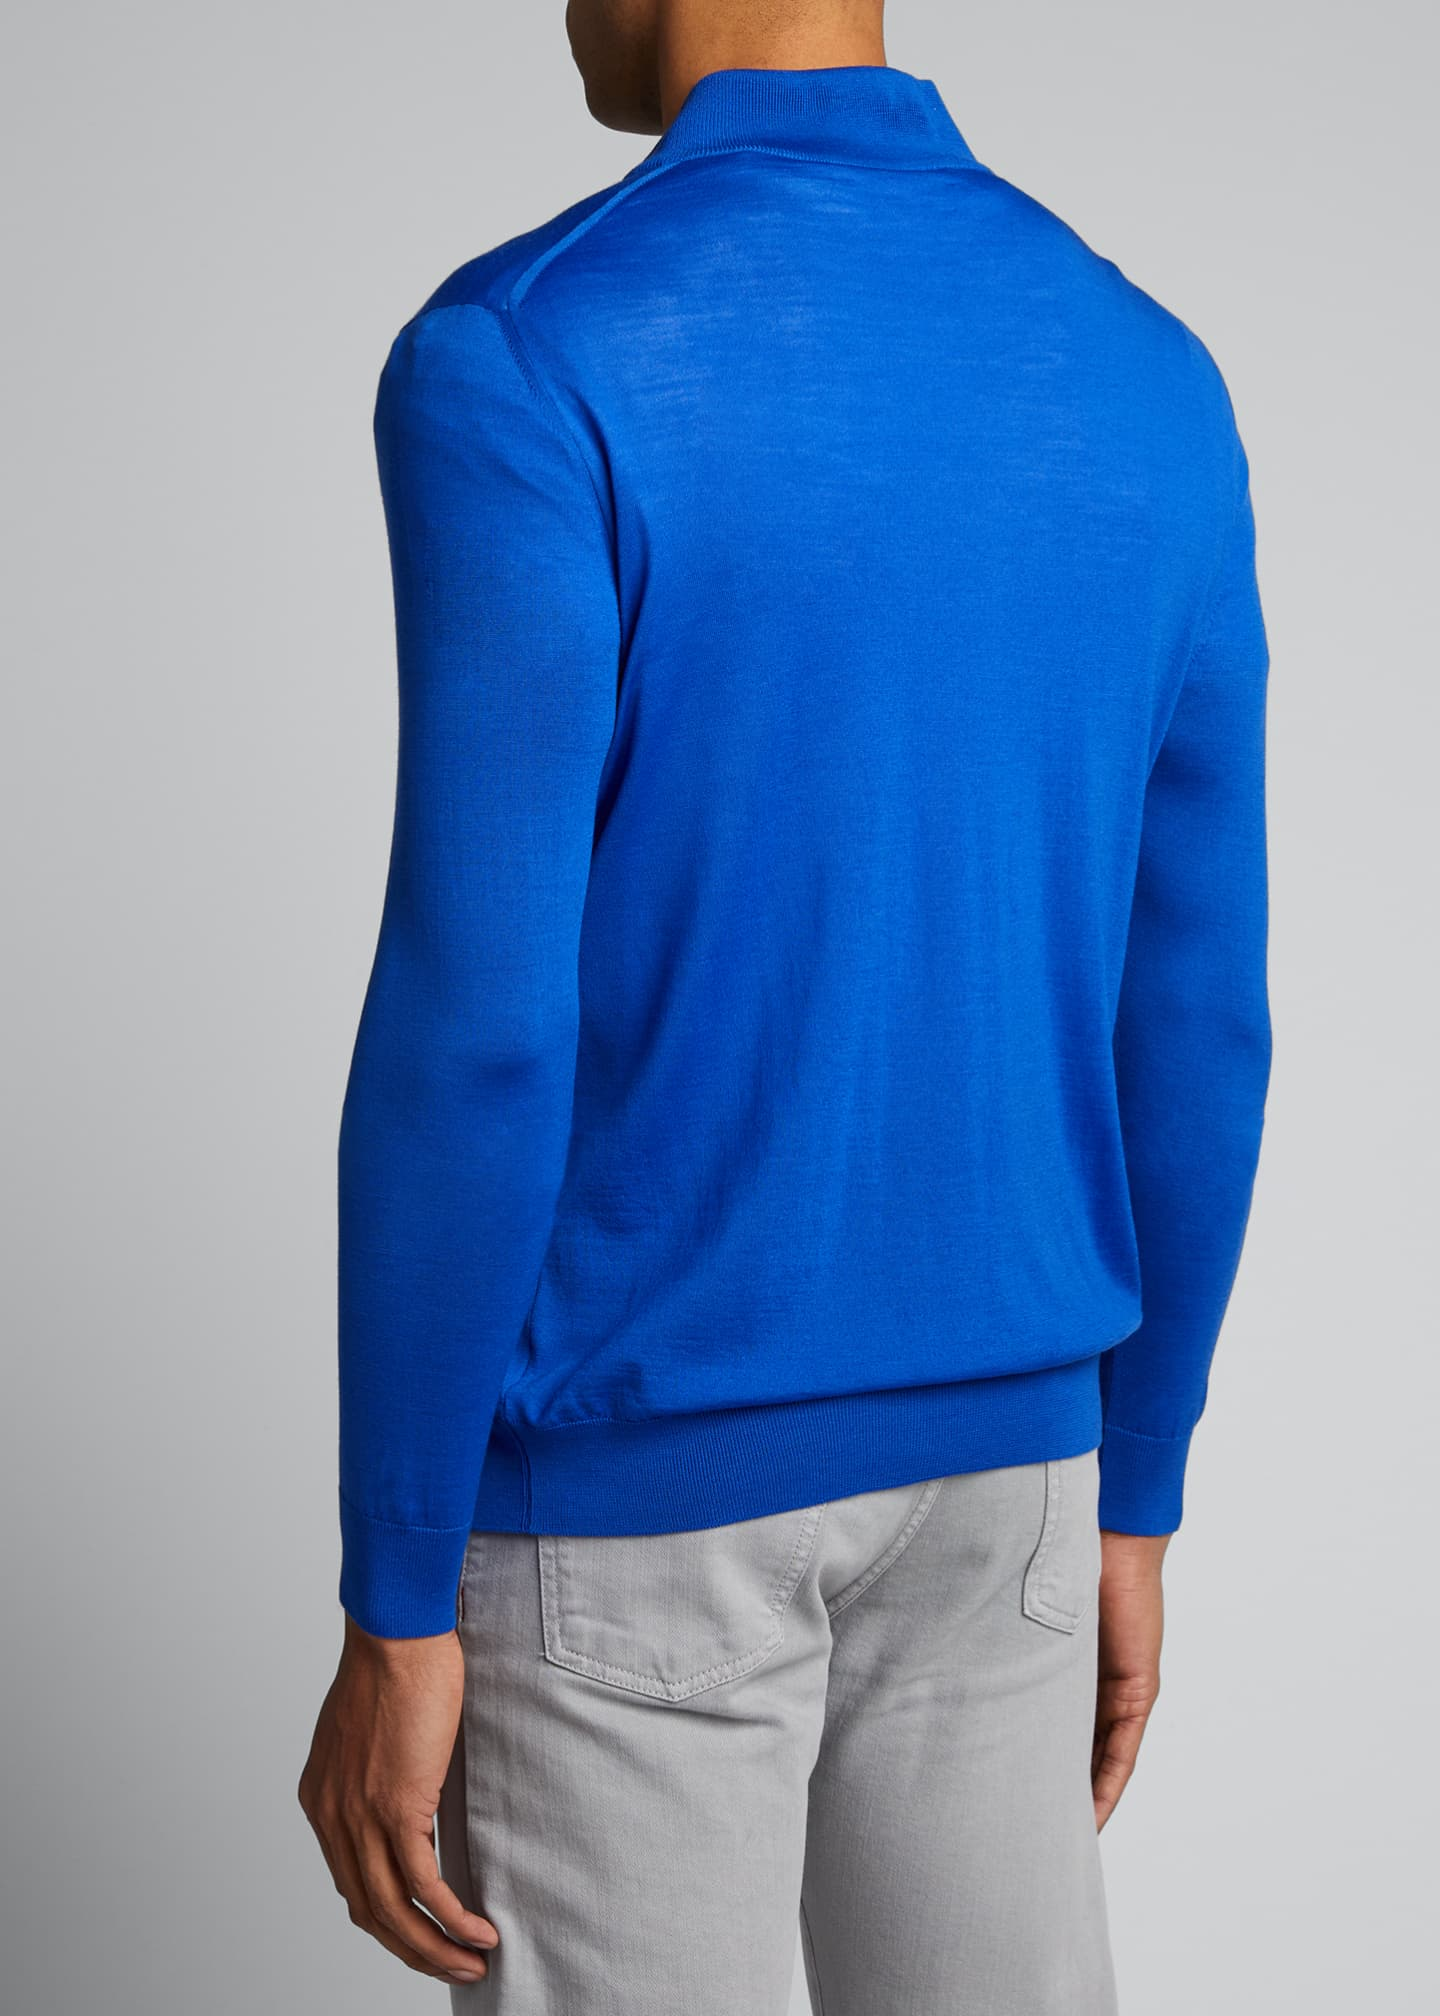 Image 2 of 5: Men's Quarter-Zip Wool Sweater